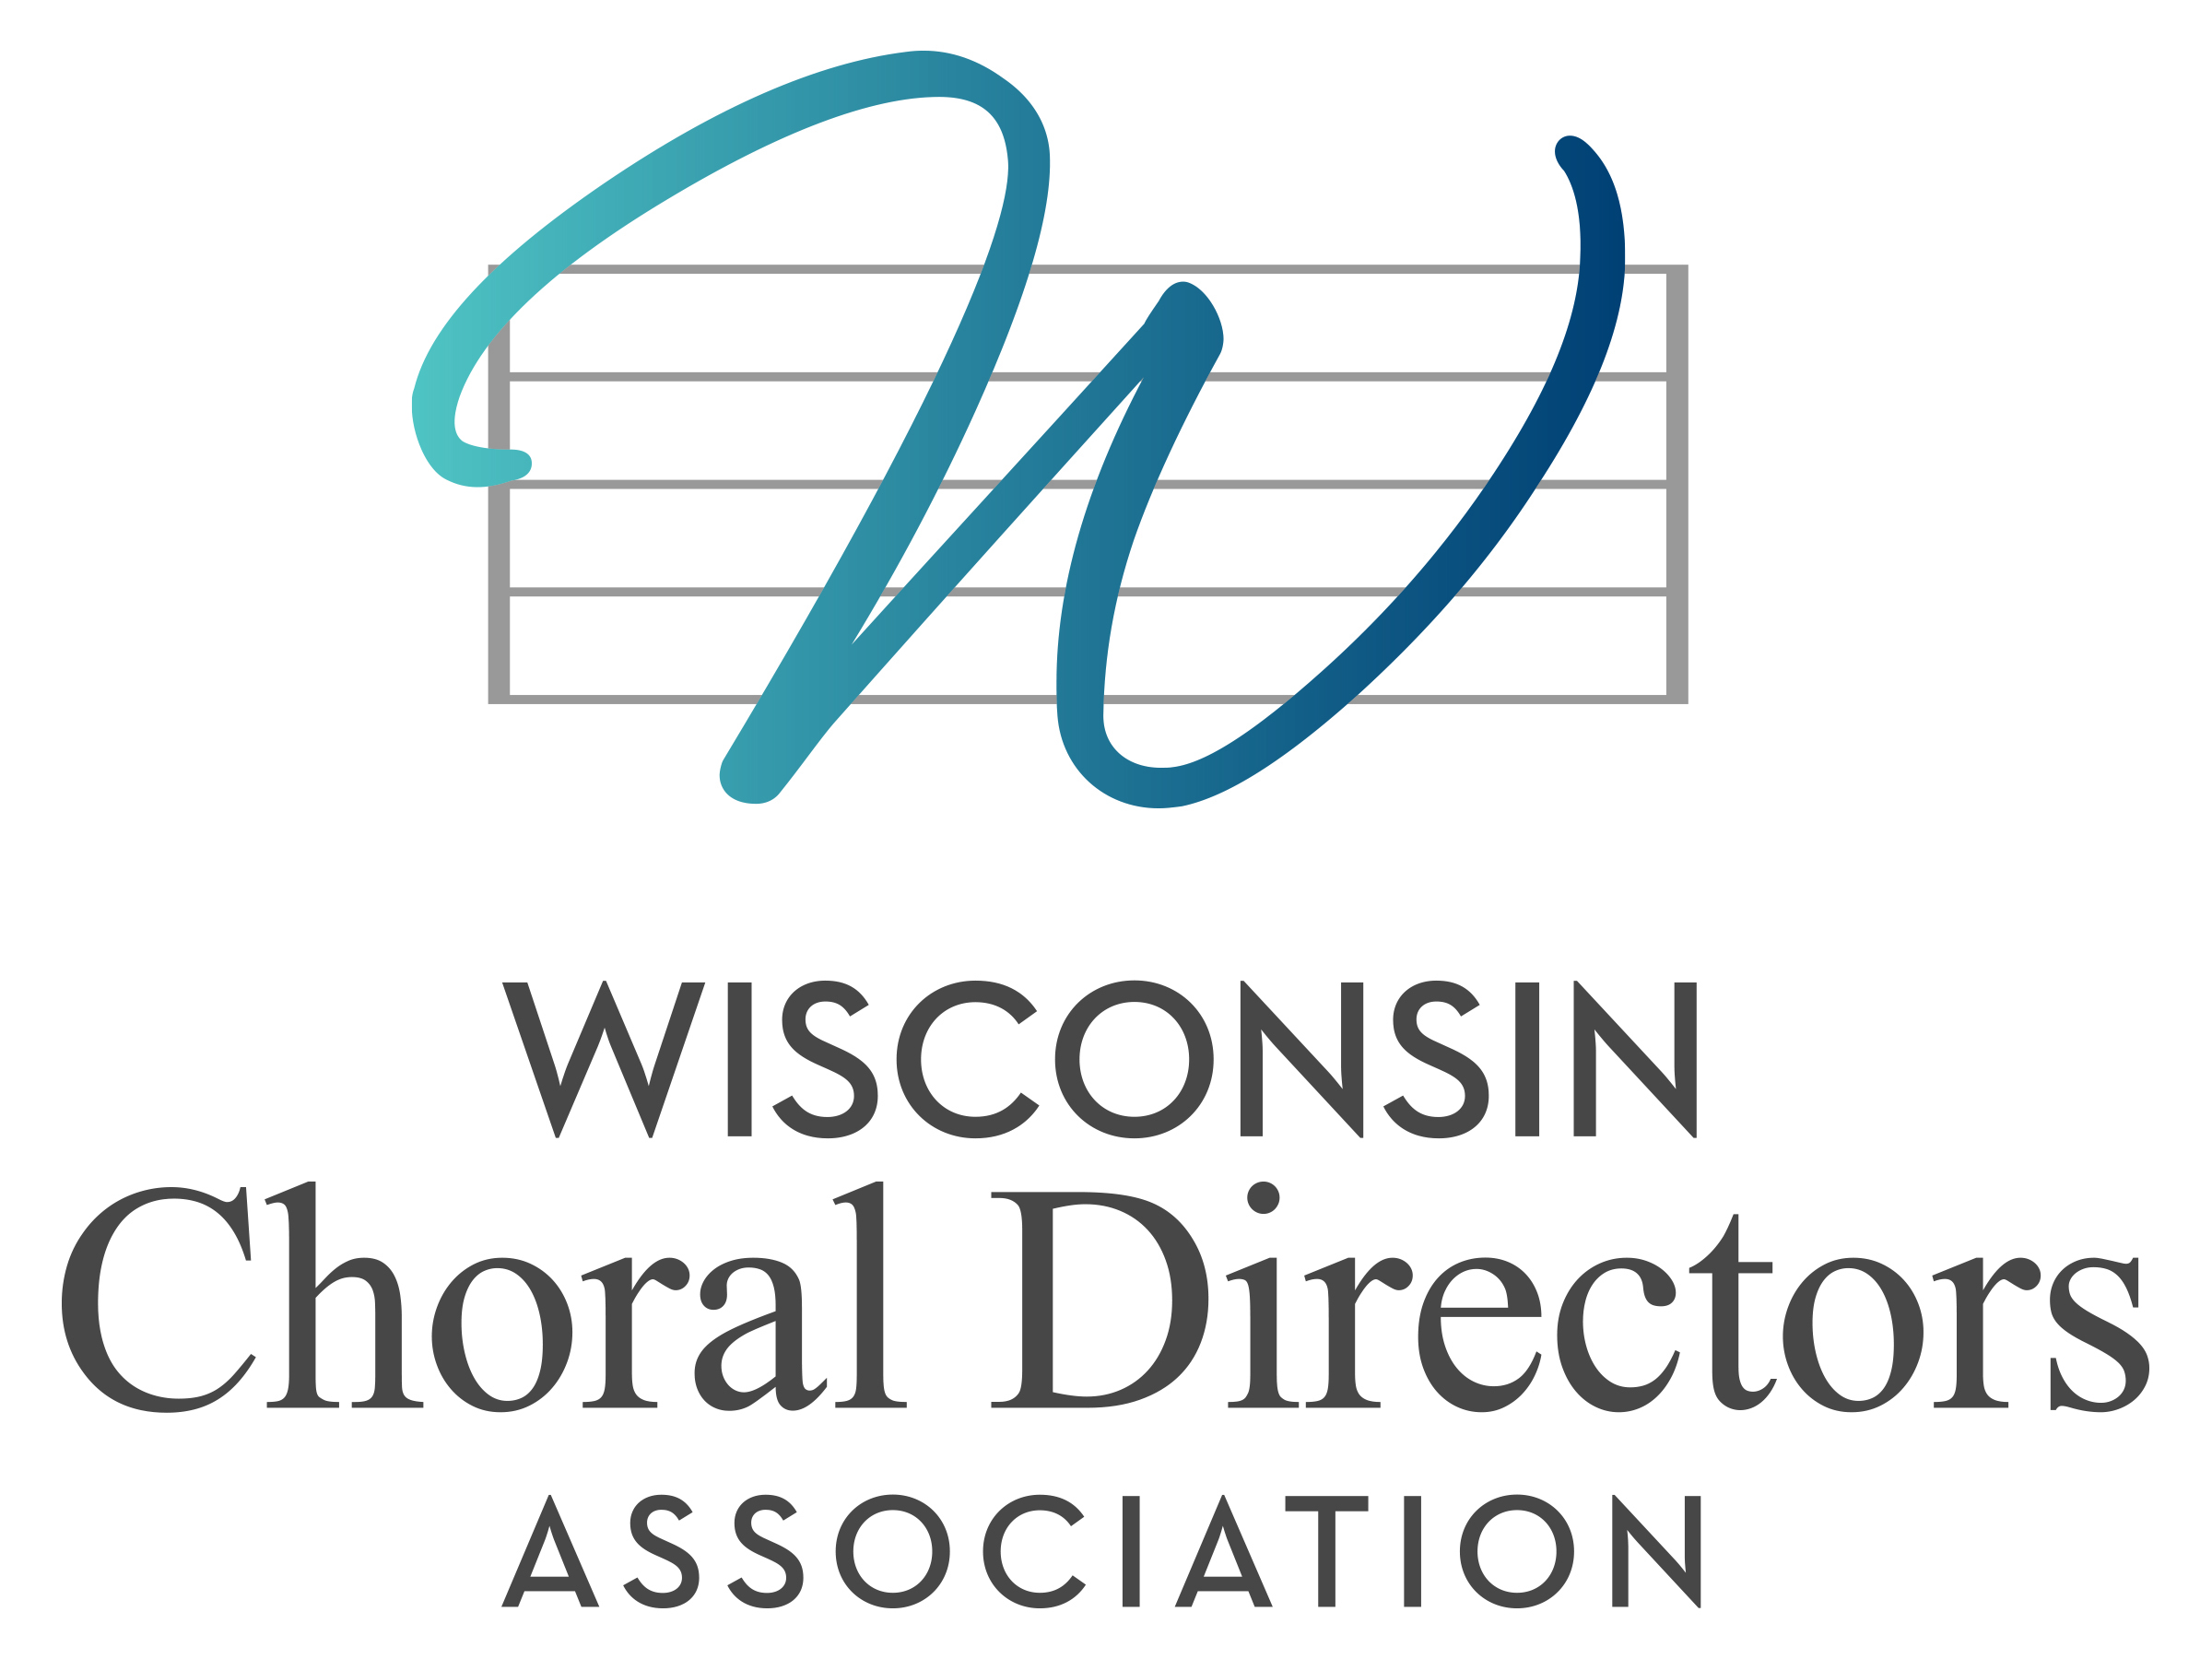 Wisconsin Choral Directors Association